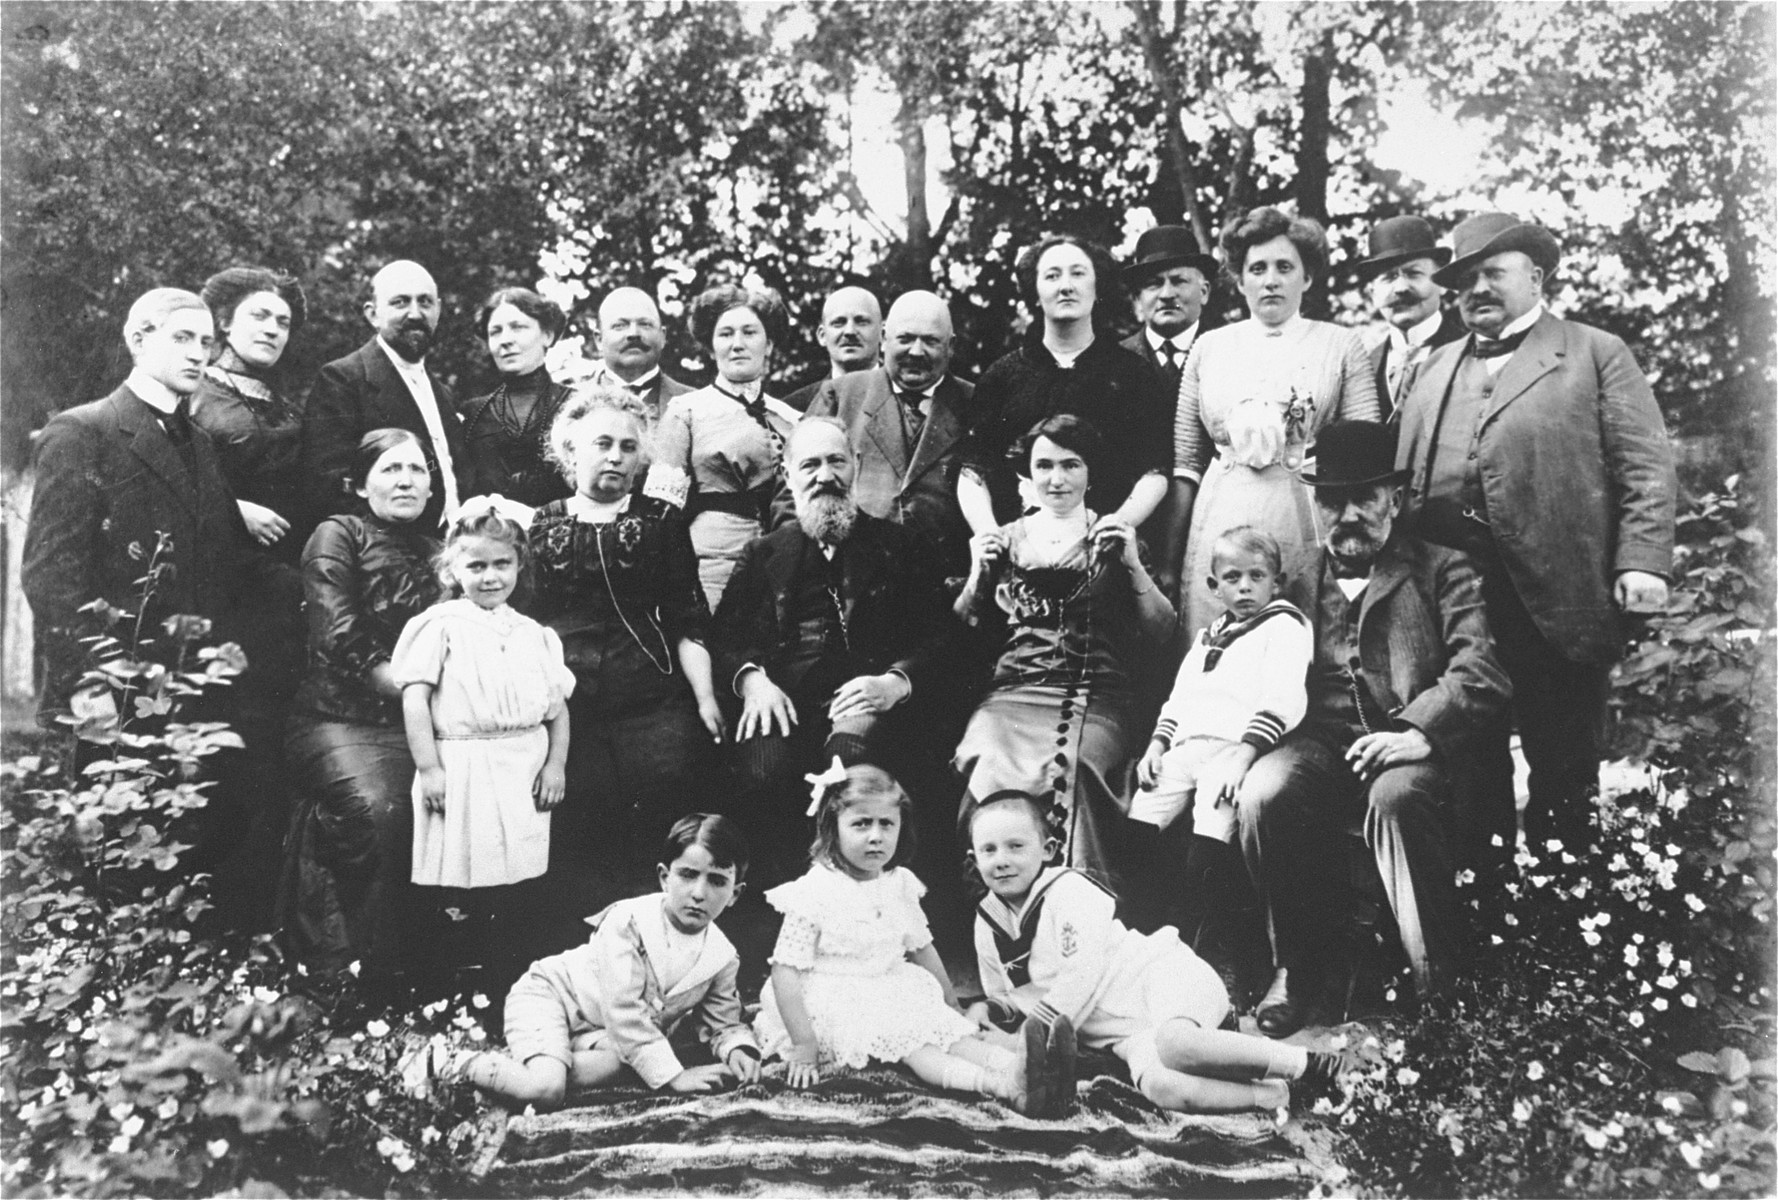 Group portrait of members of the extended Anker family at a reunion in Lidzbark Warminski, Poland.